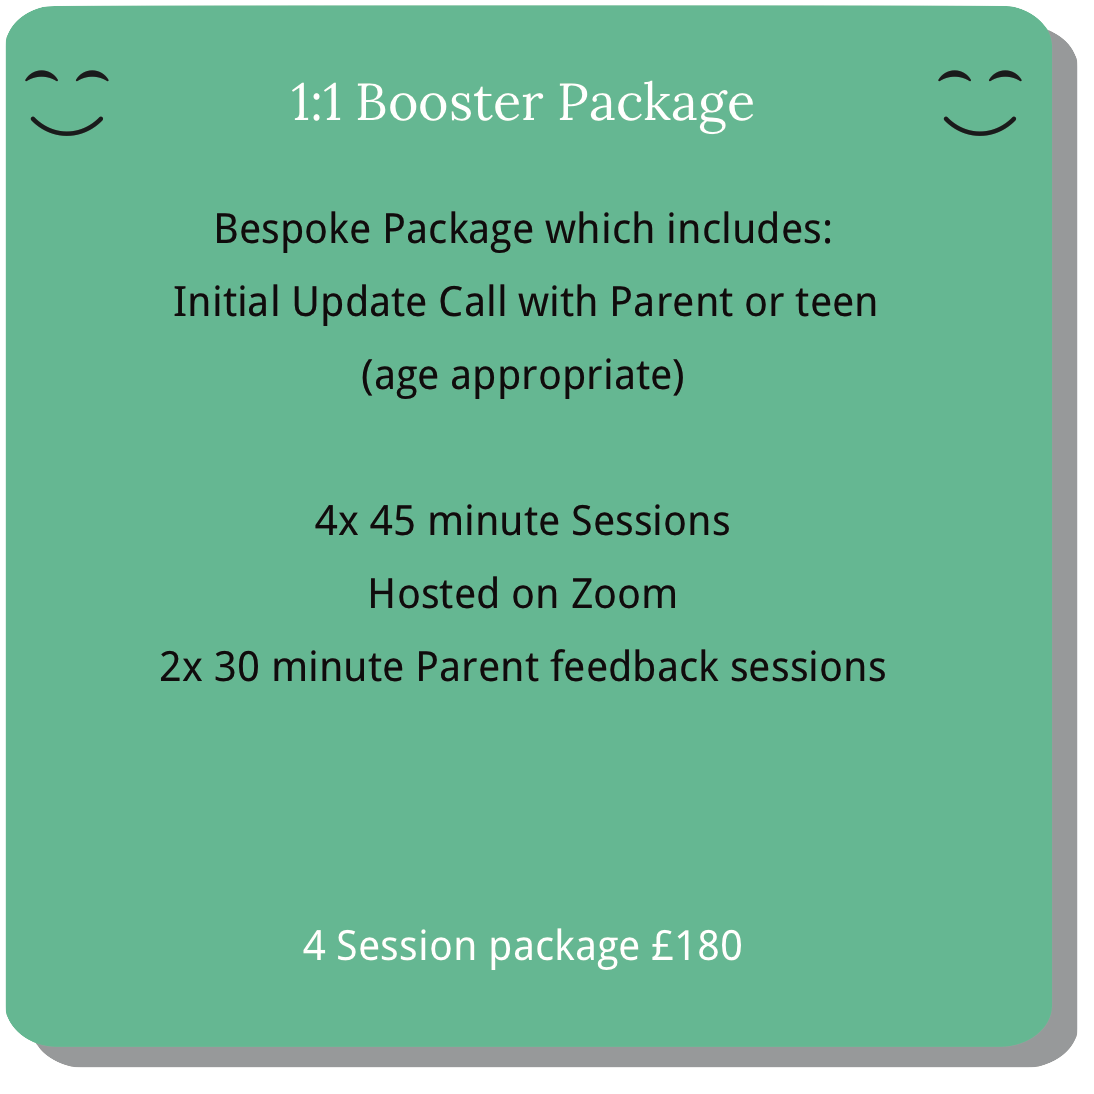 1 to 1 Booster Package for children or teens to revise, refresh, and expand their emotional learning.